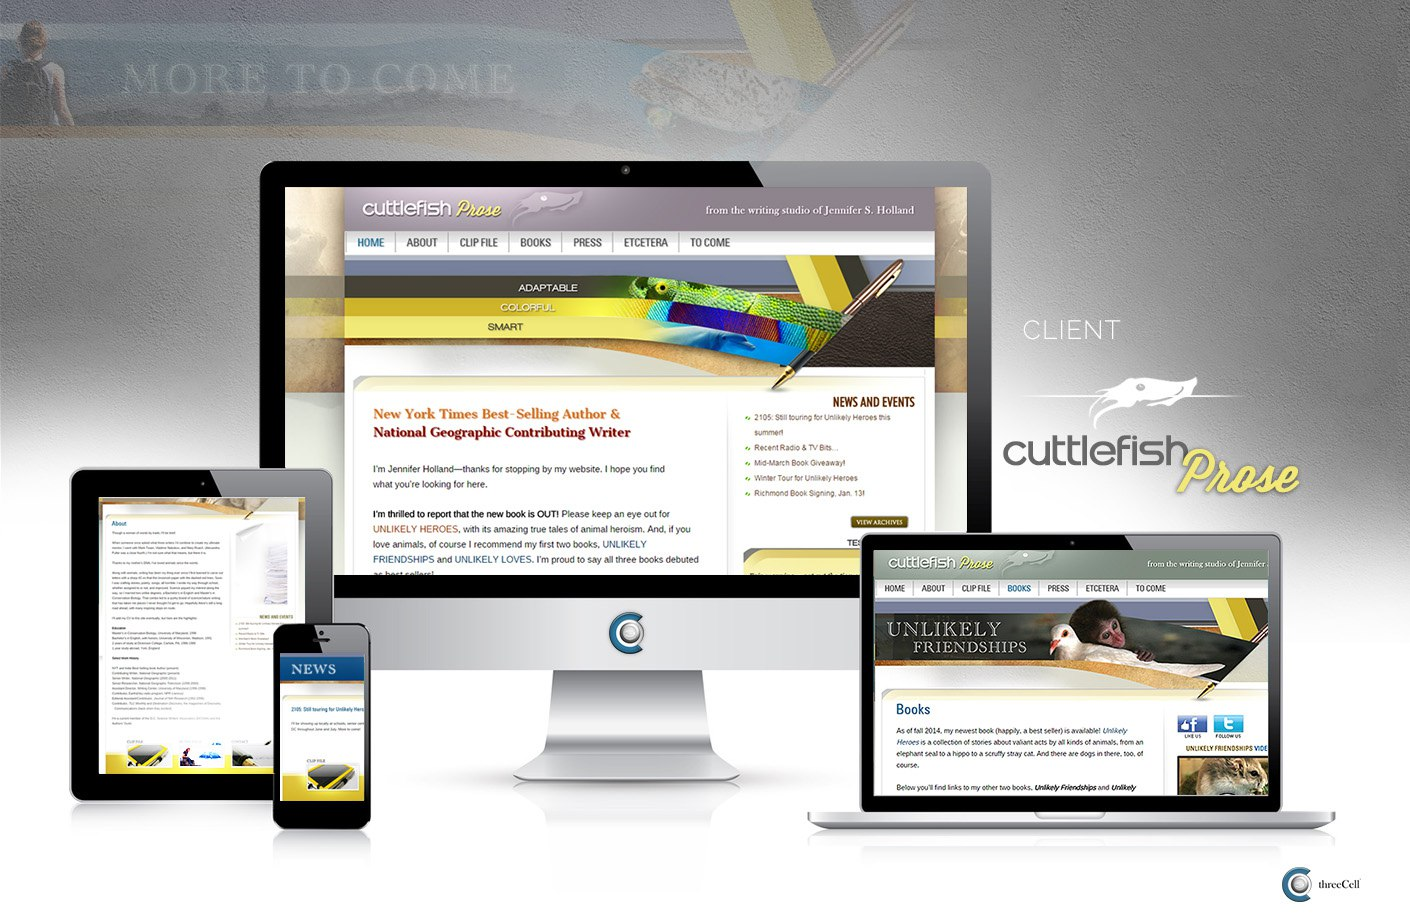 Cuttlefish Prose - ThreeCell Web Design